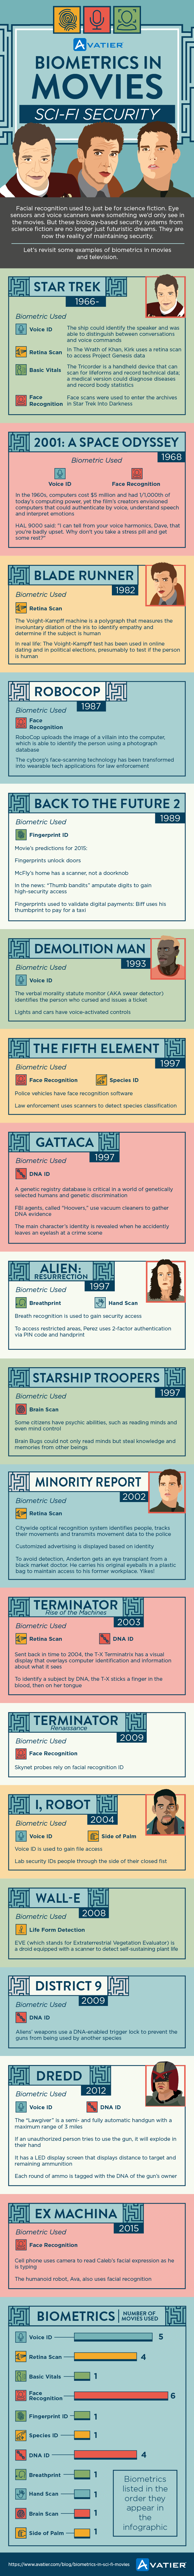 biometrics in sci-fi movies